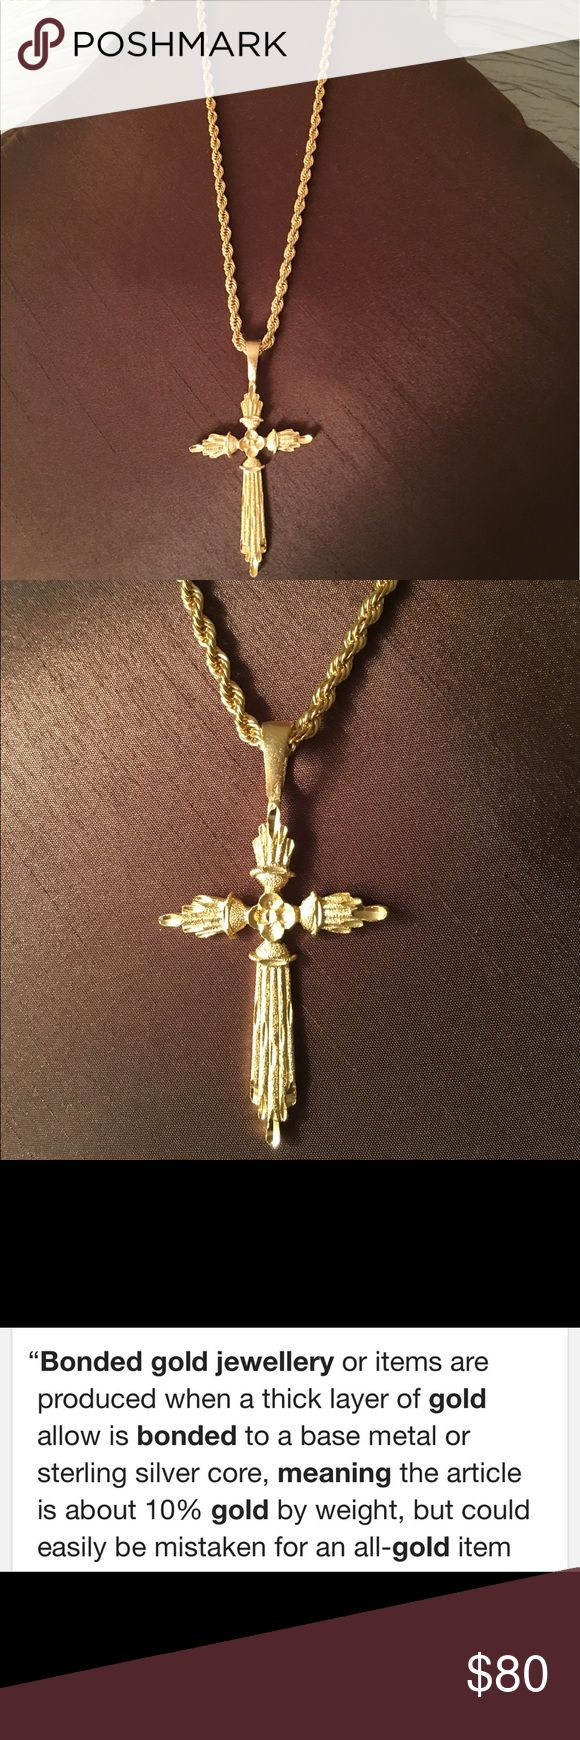 Big and bold 14K gold bonded rope chain and cross Big and beautiful shiny 14K gold bonded rope chain and cross. Very durable ever fades or tarnish, life time Warranty. New never been worn Jewelry Necklaces